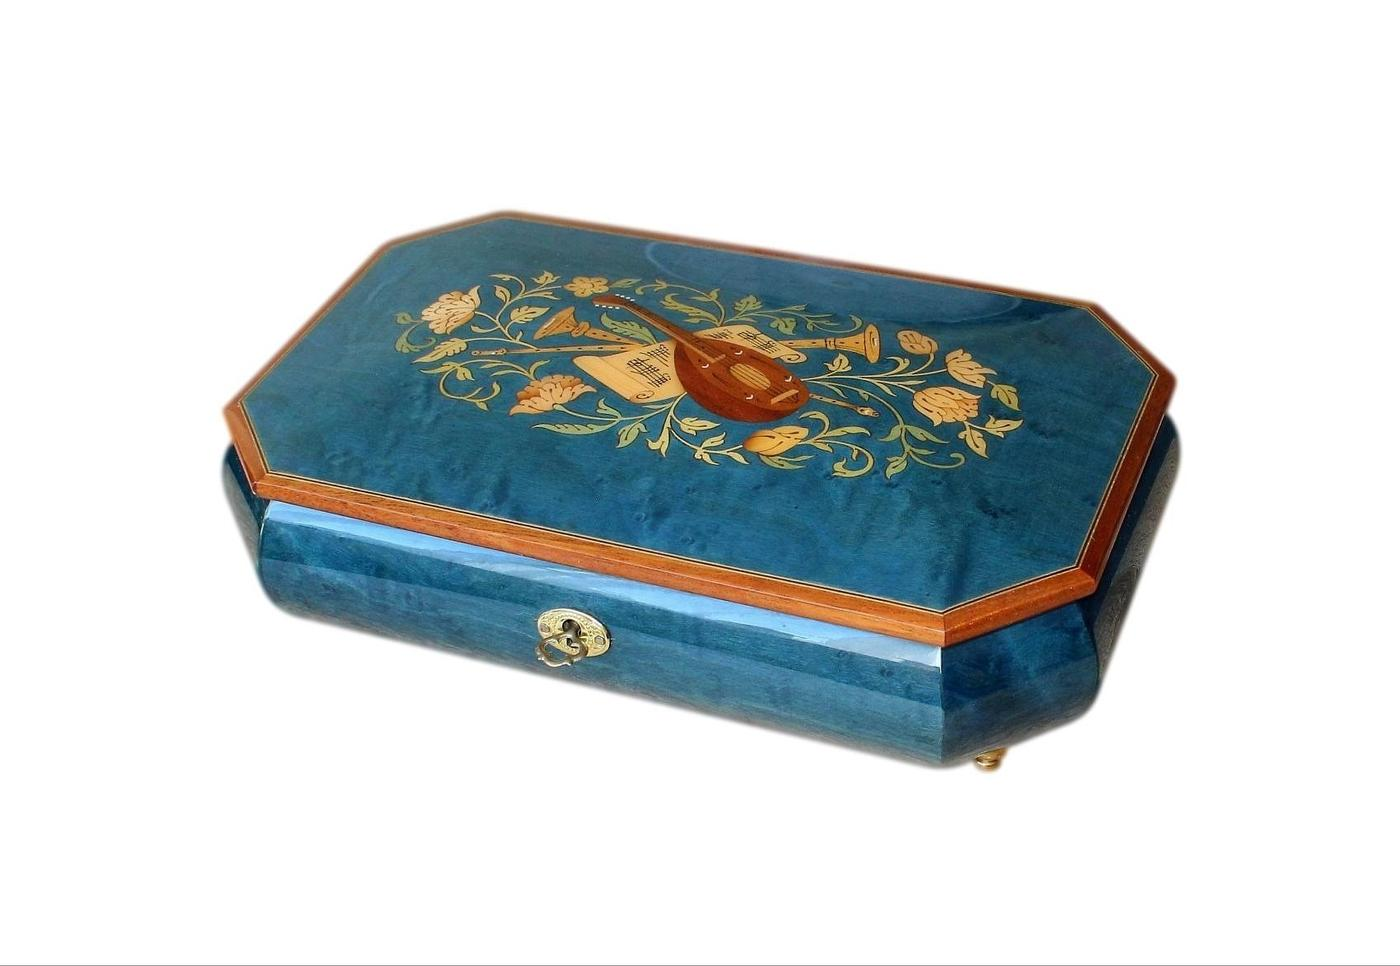 Stunning Sorrento Vintage Musical Jewellery Box Enamelled And Inlaid